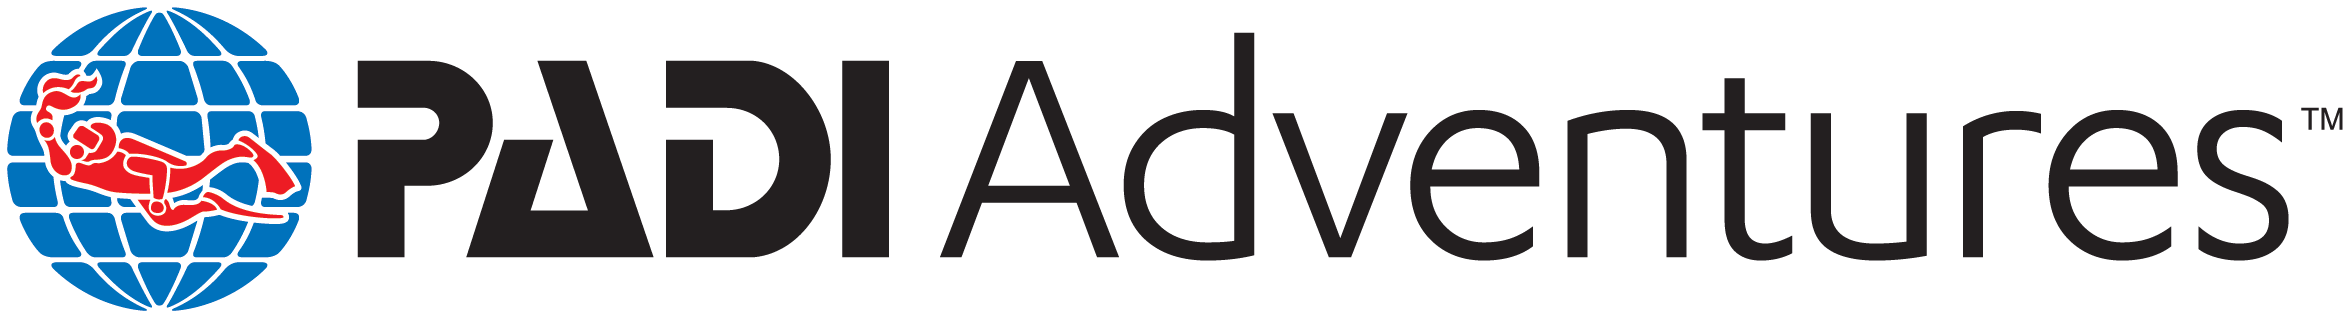 adventures-logo